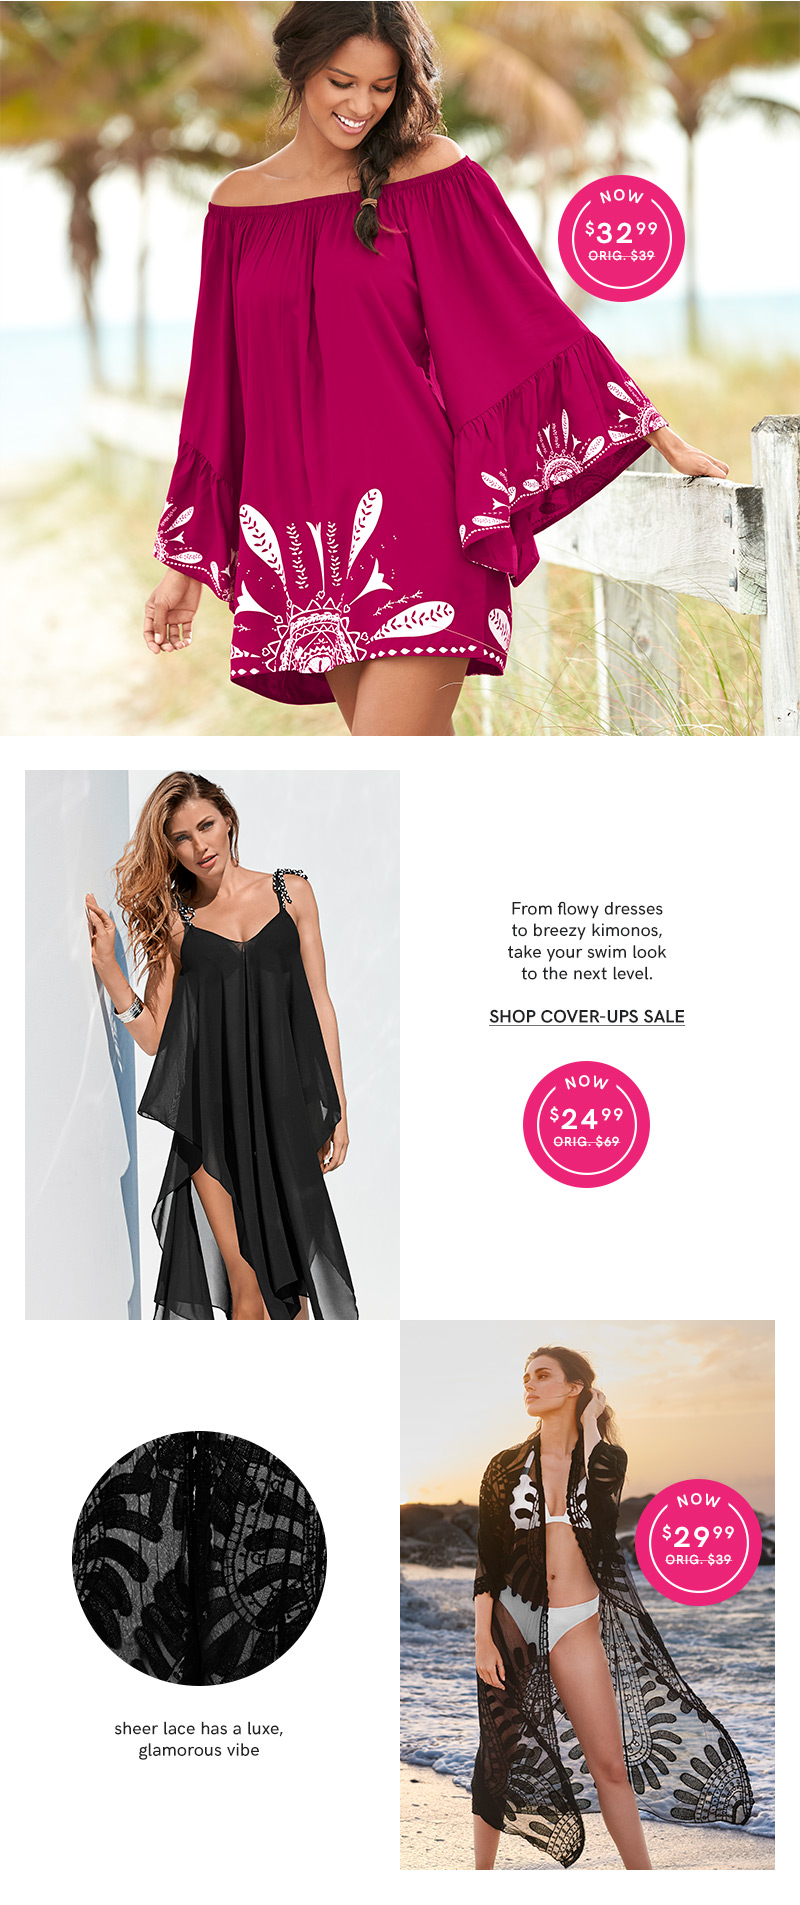 Shop our Swimwear Cover-Up sale.